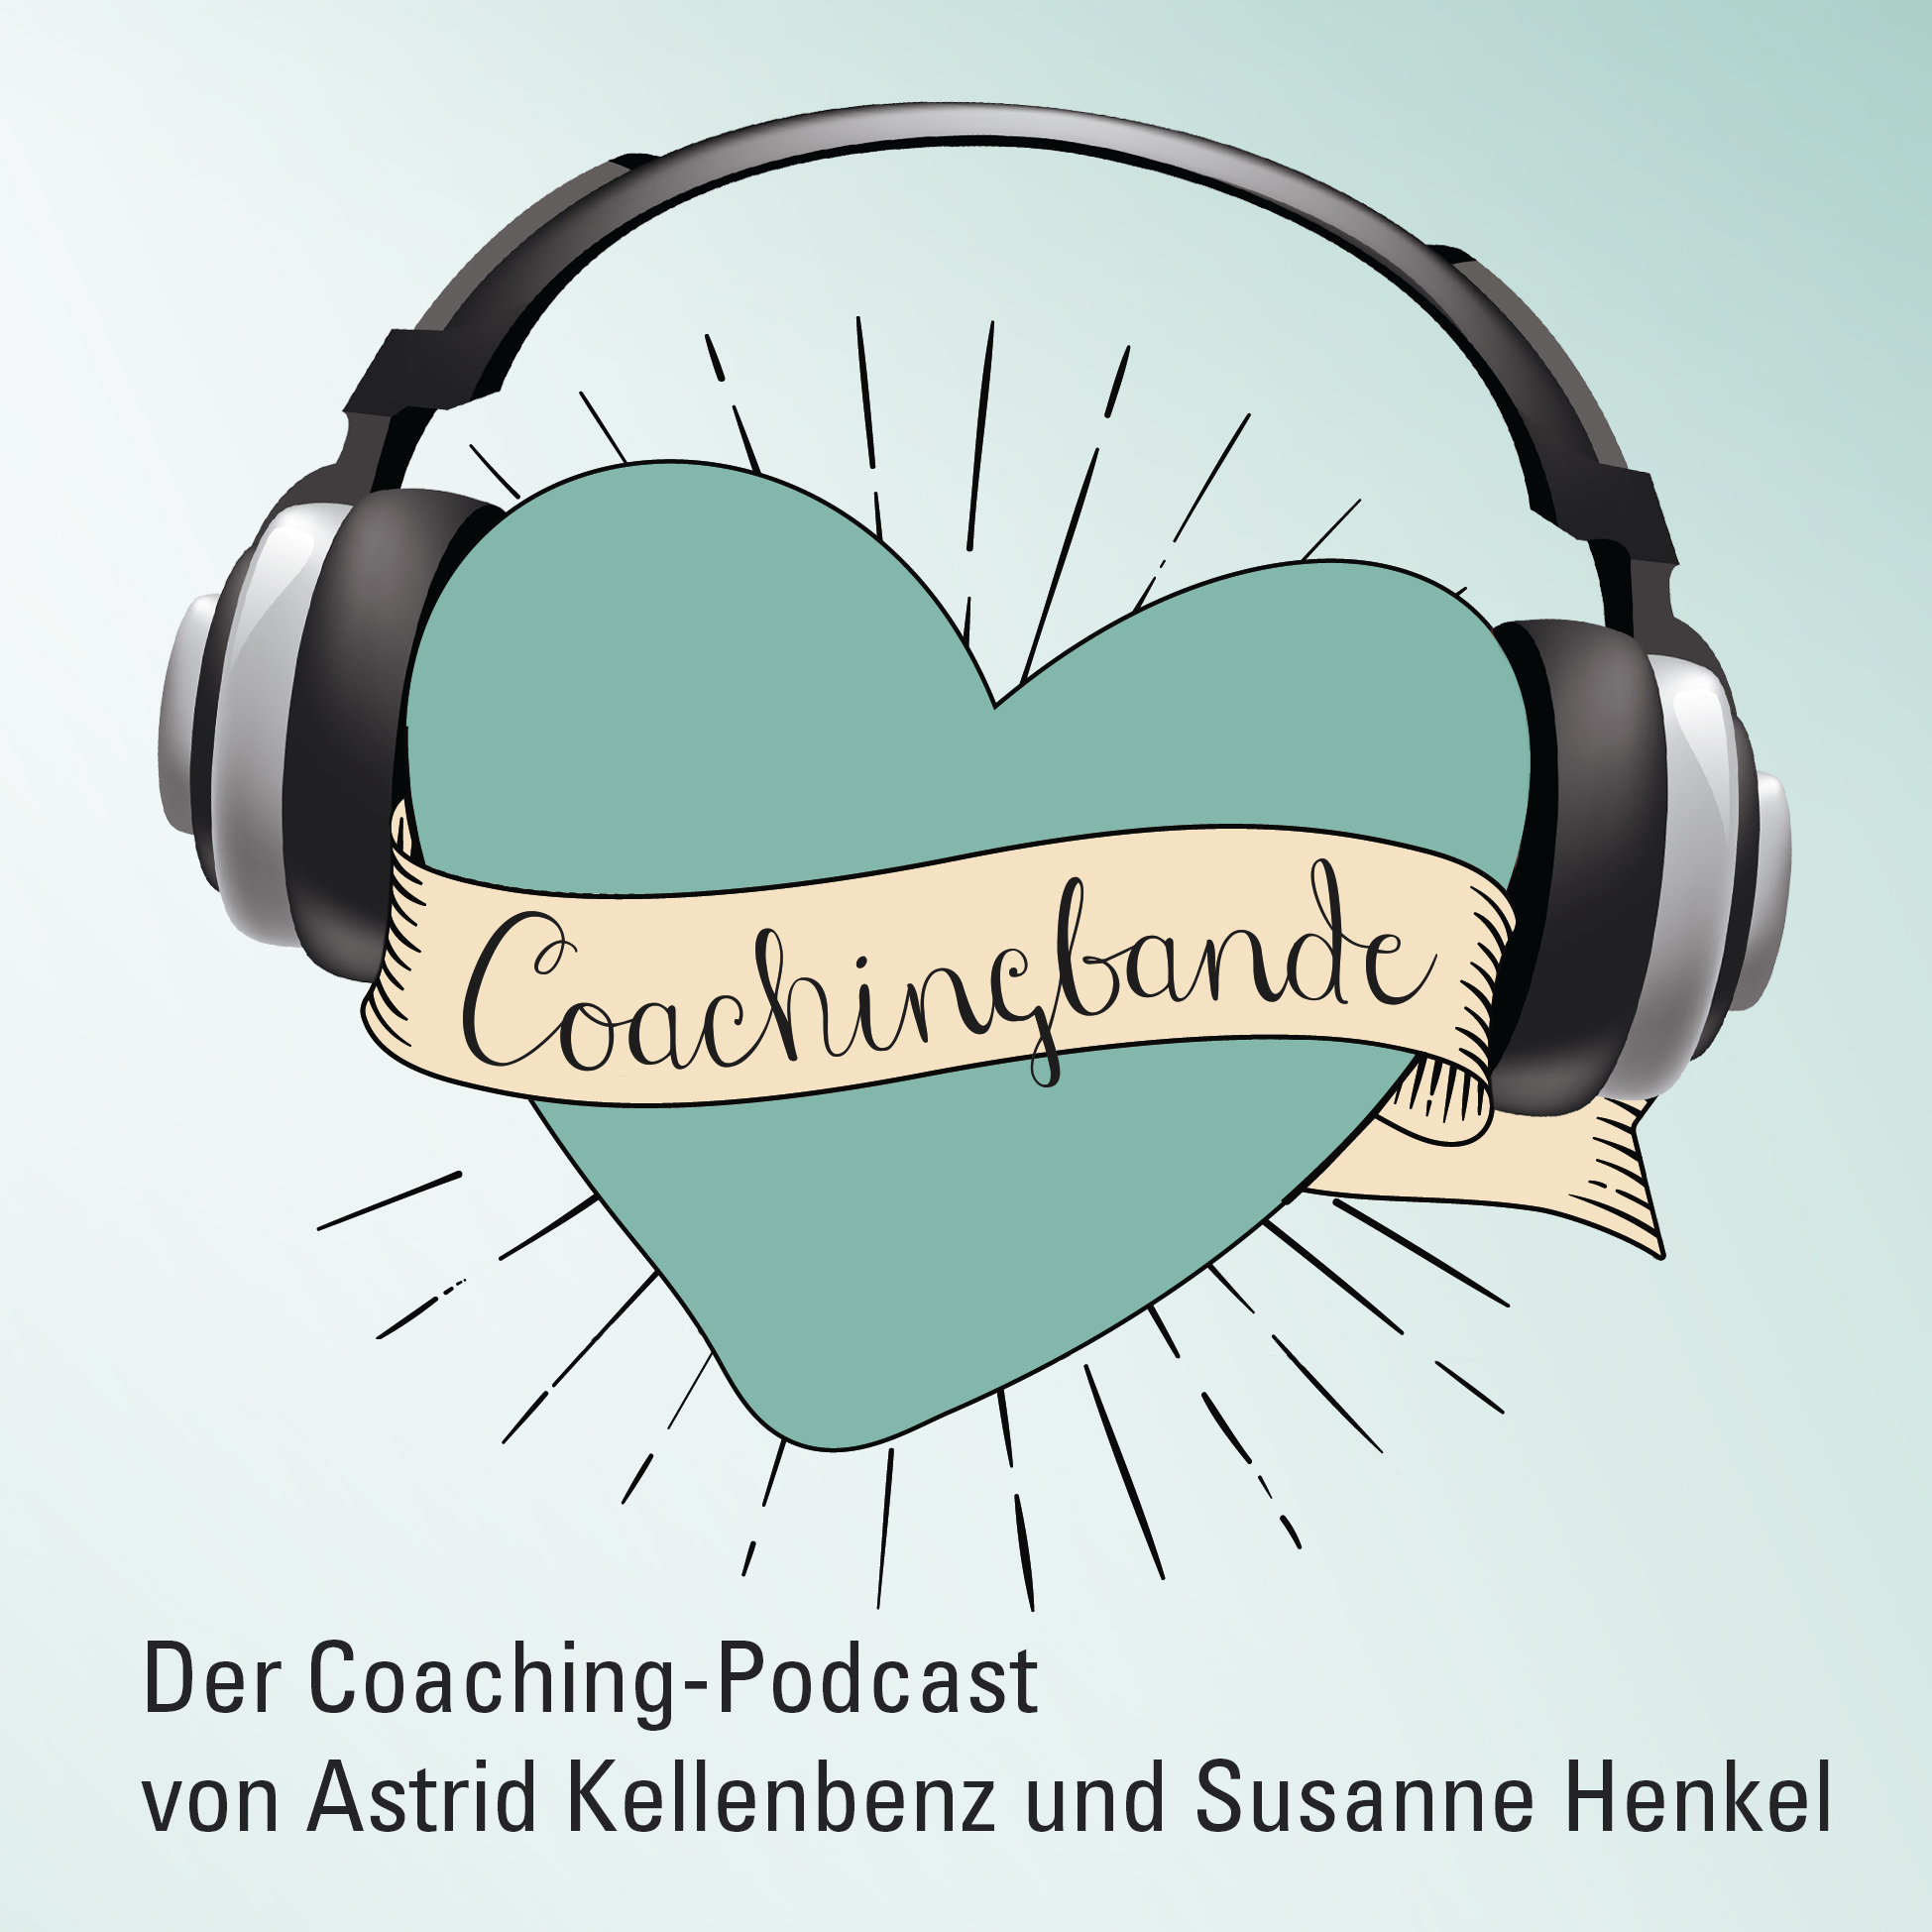 COACHINGBANDE - DER systemische Coaching-Podcast show art